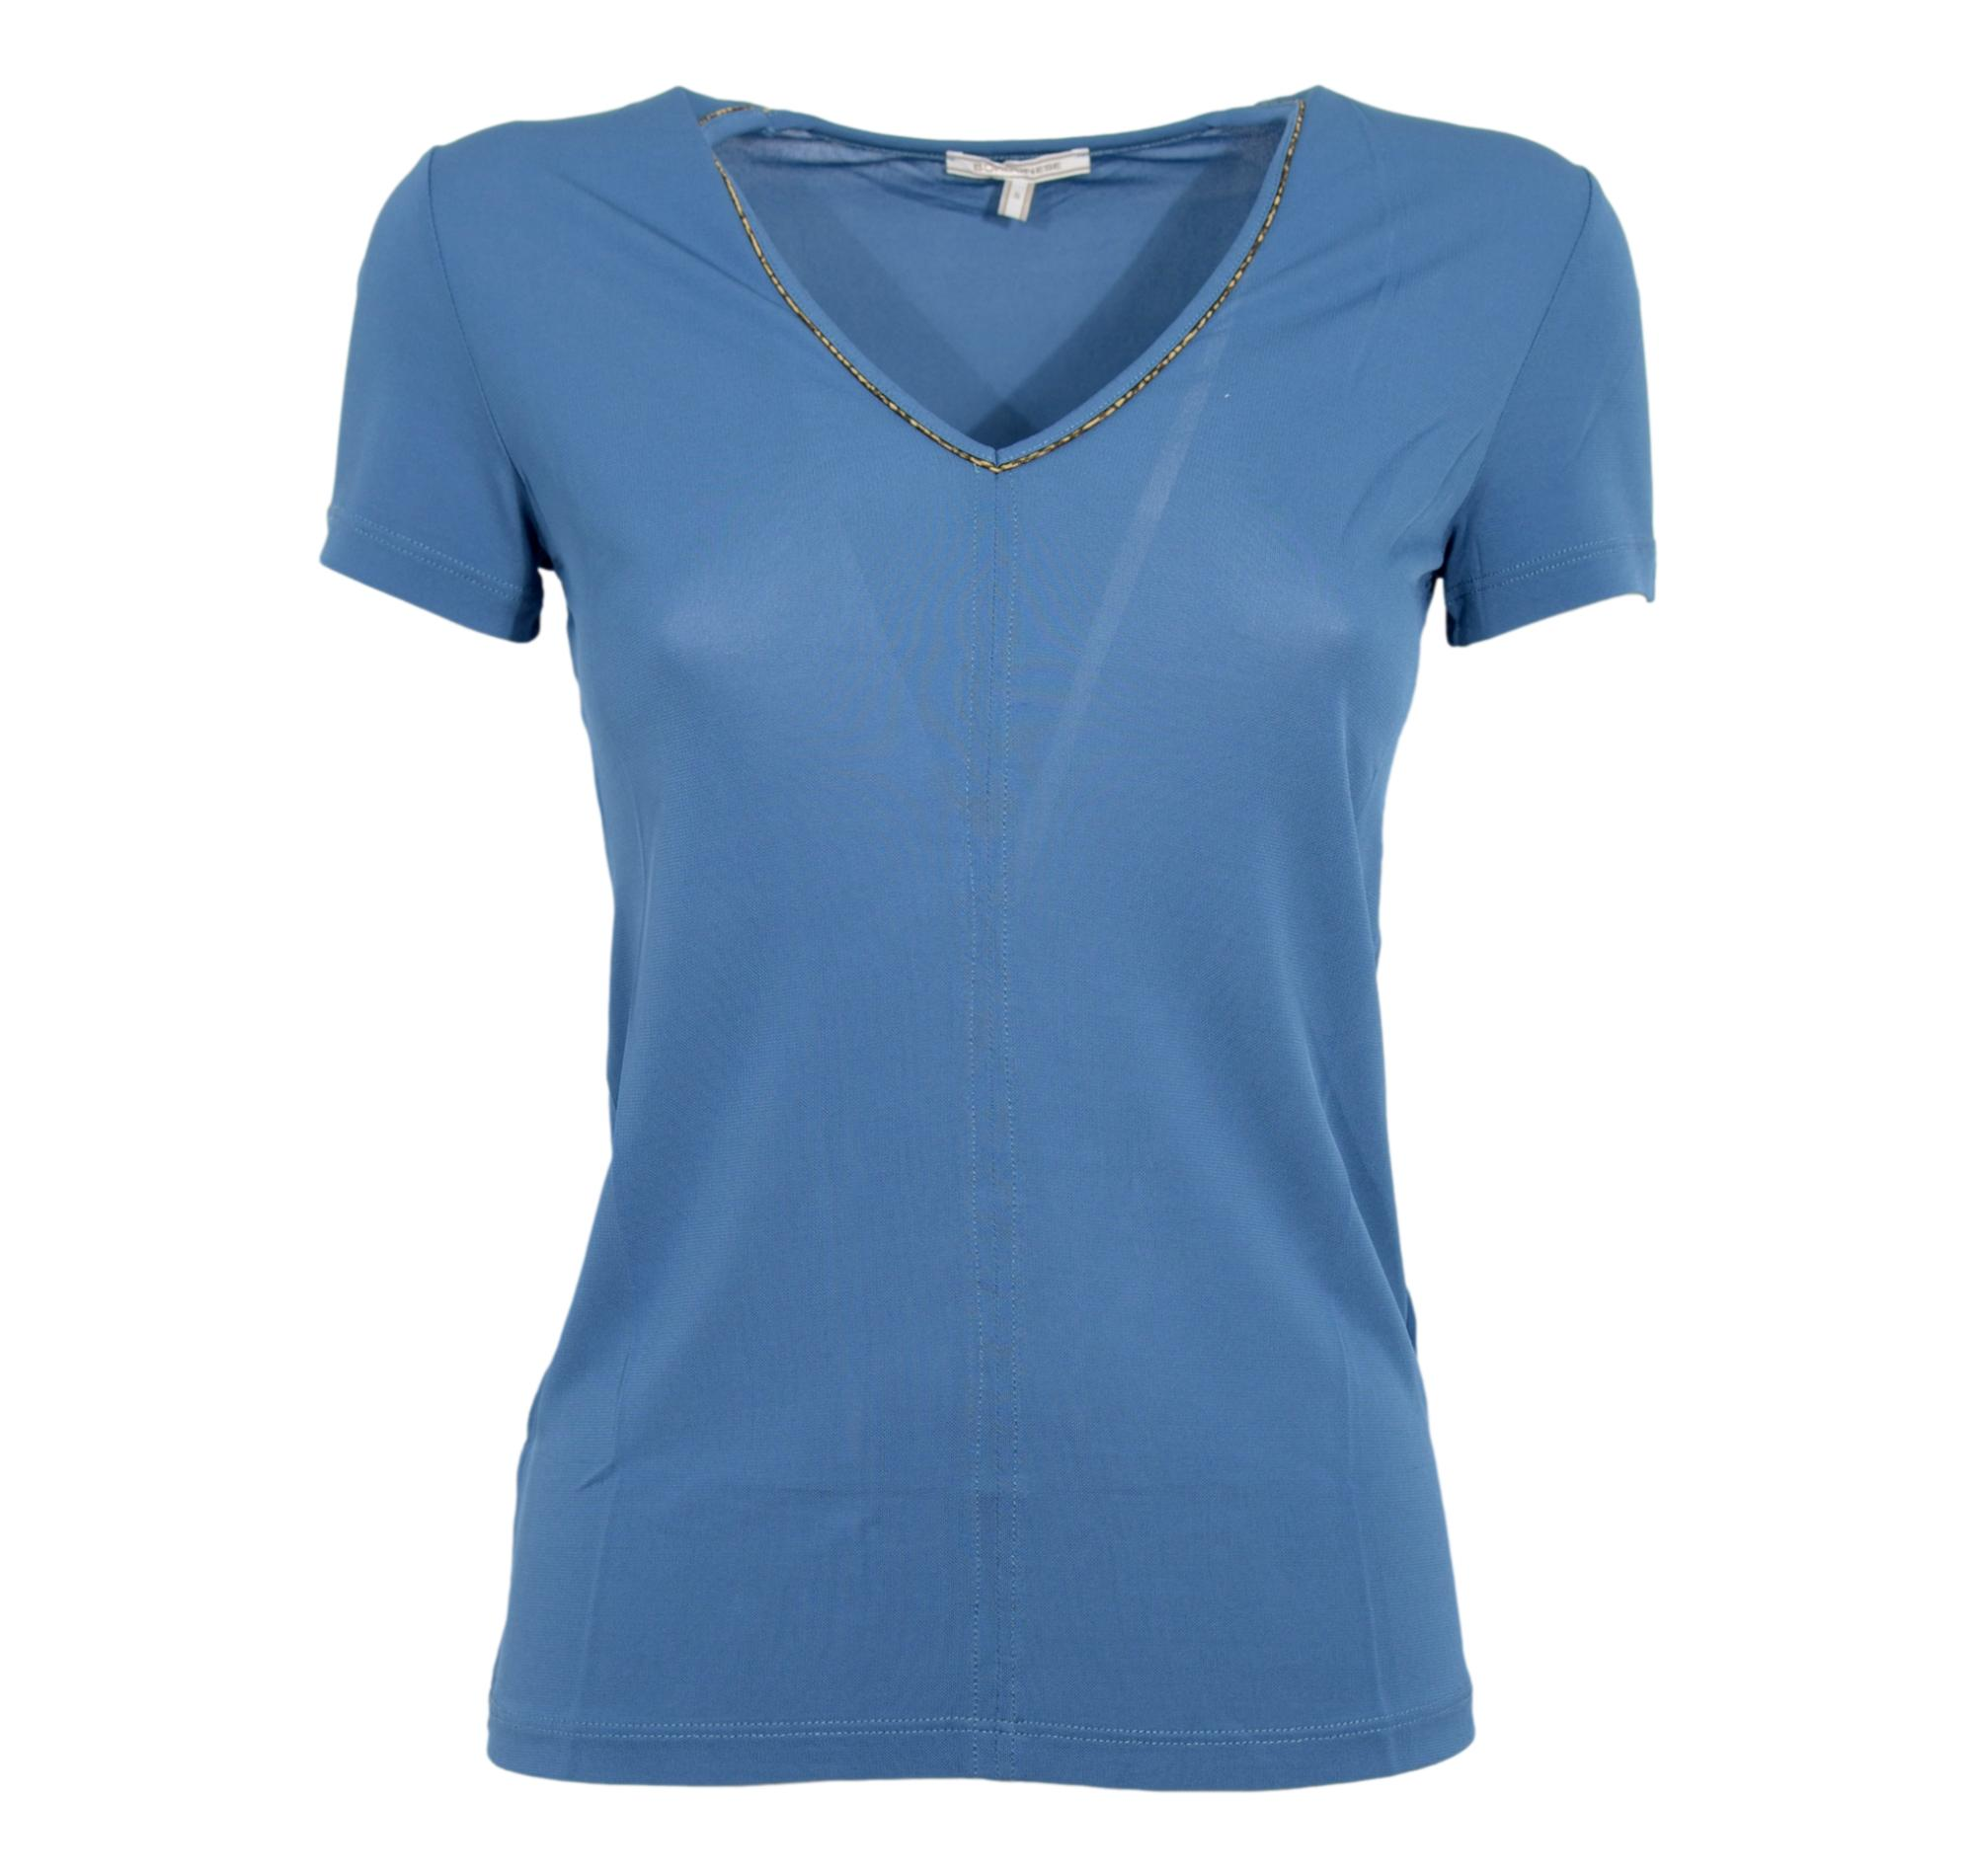 BORBONESE T SHIRT DONNA SCOLLO V ART.6DC334 BLUE NATURAL / EV